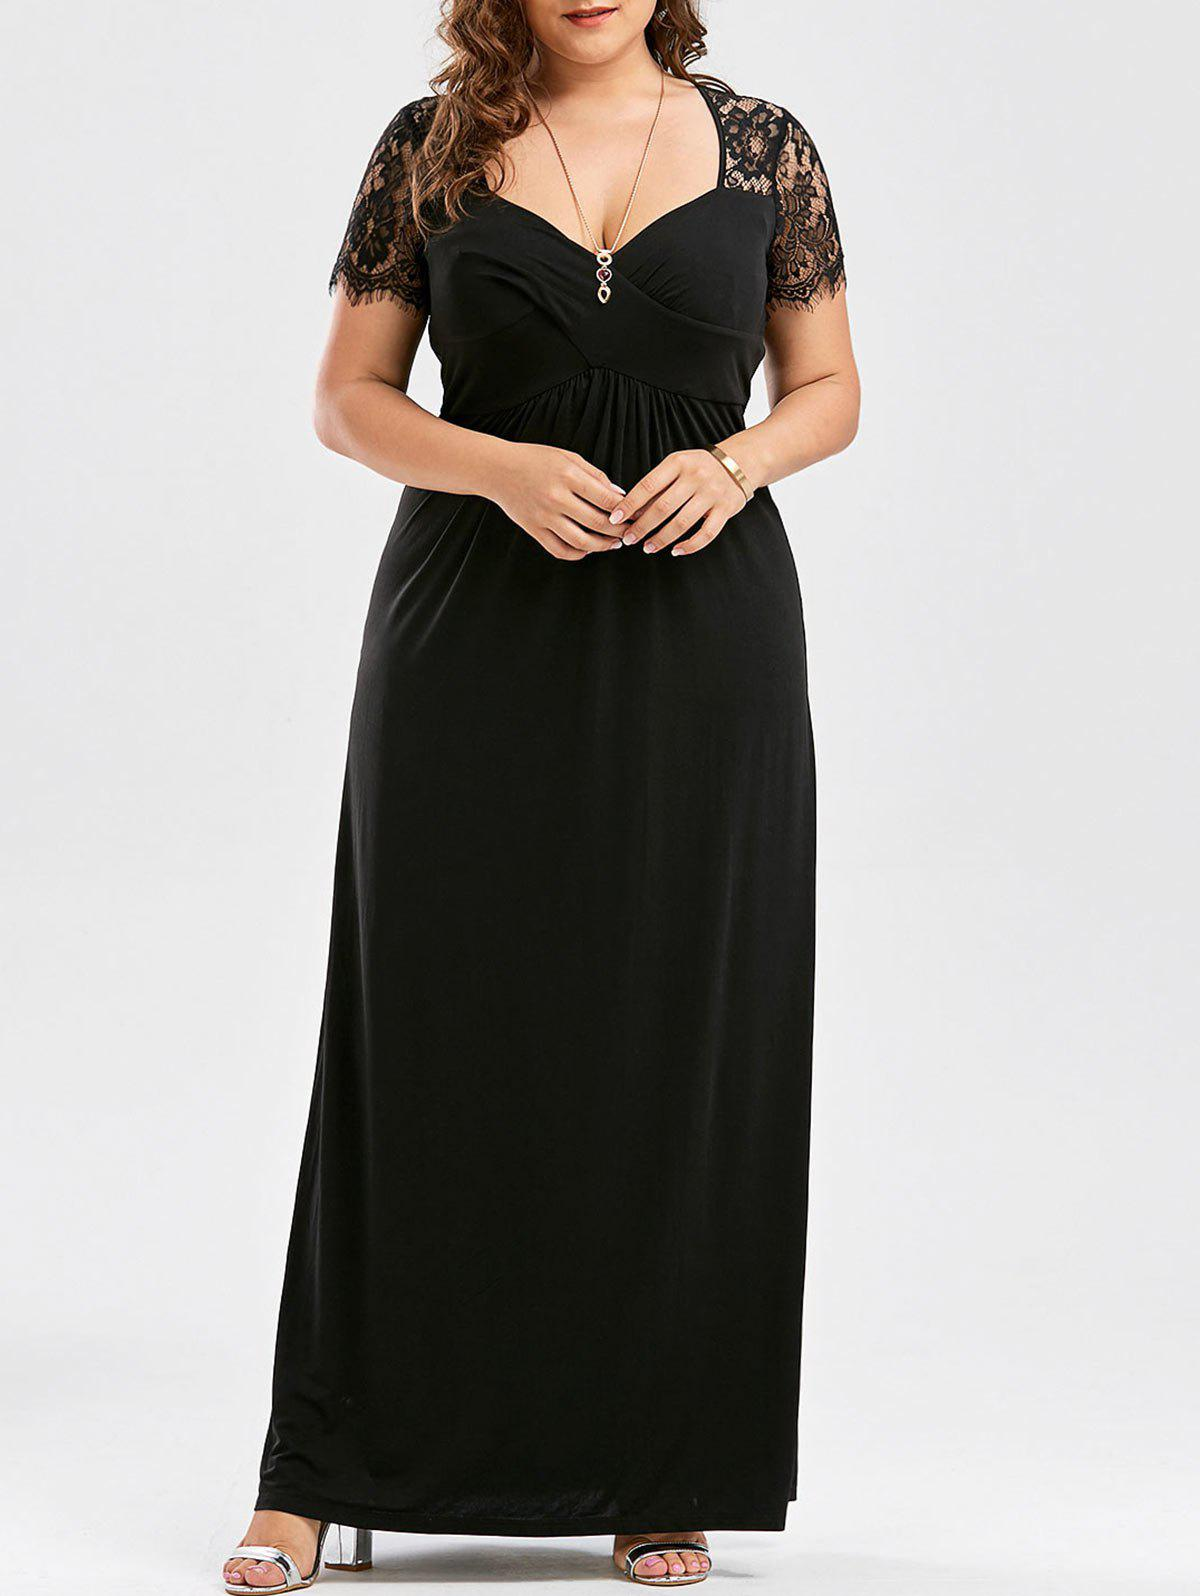 Buy Lace Panel Plus Size Sweetheart Formal Dress